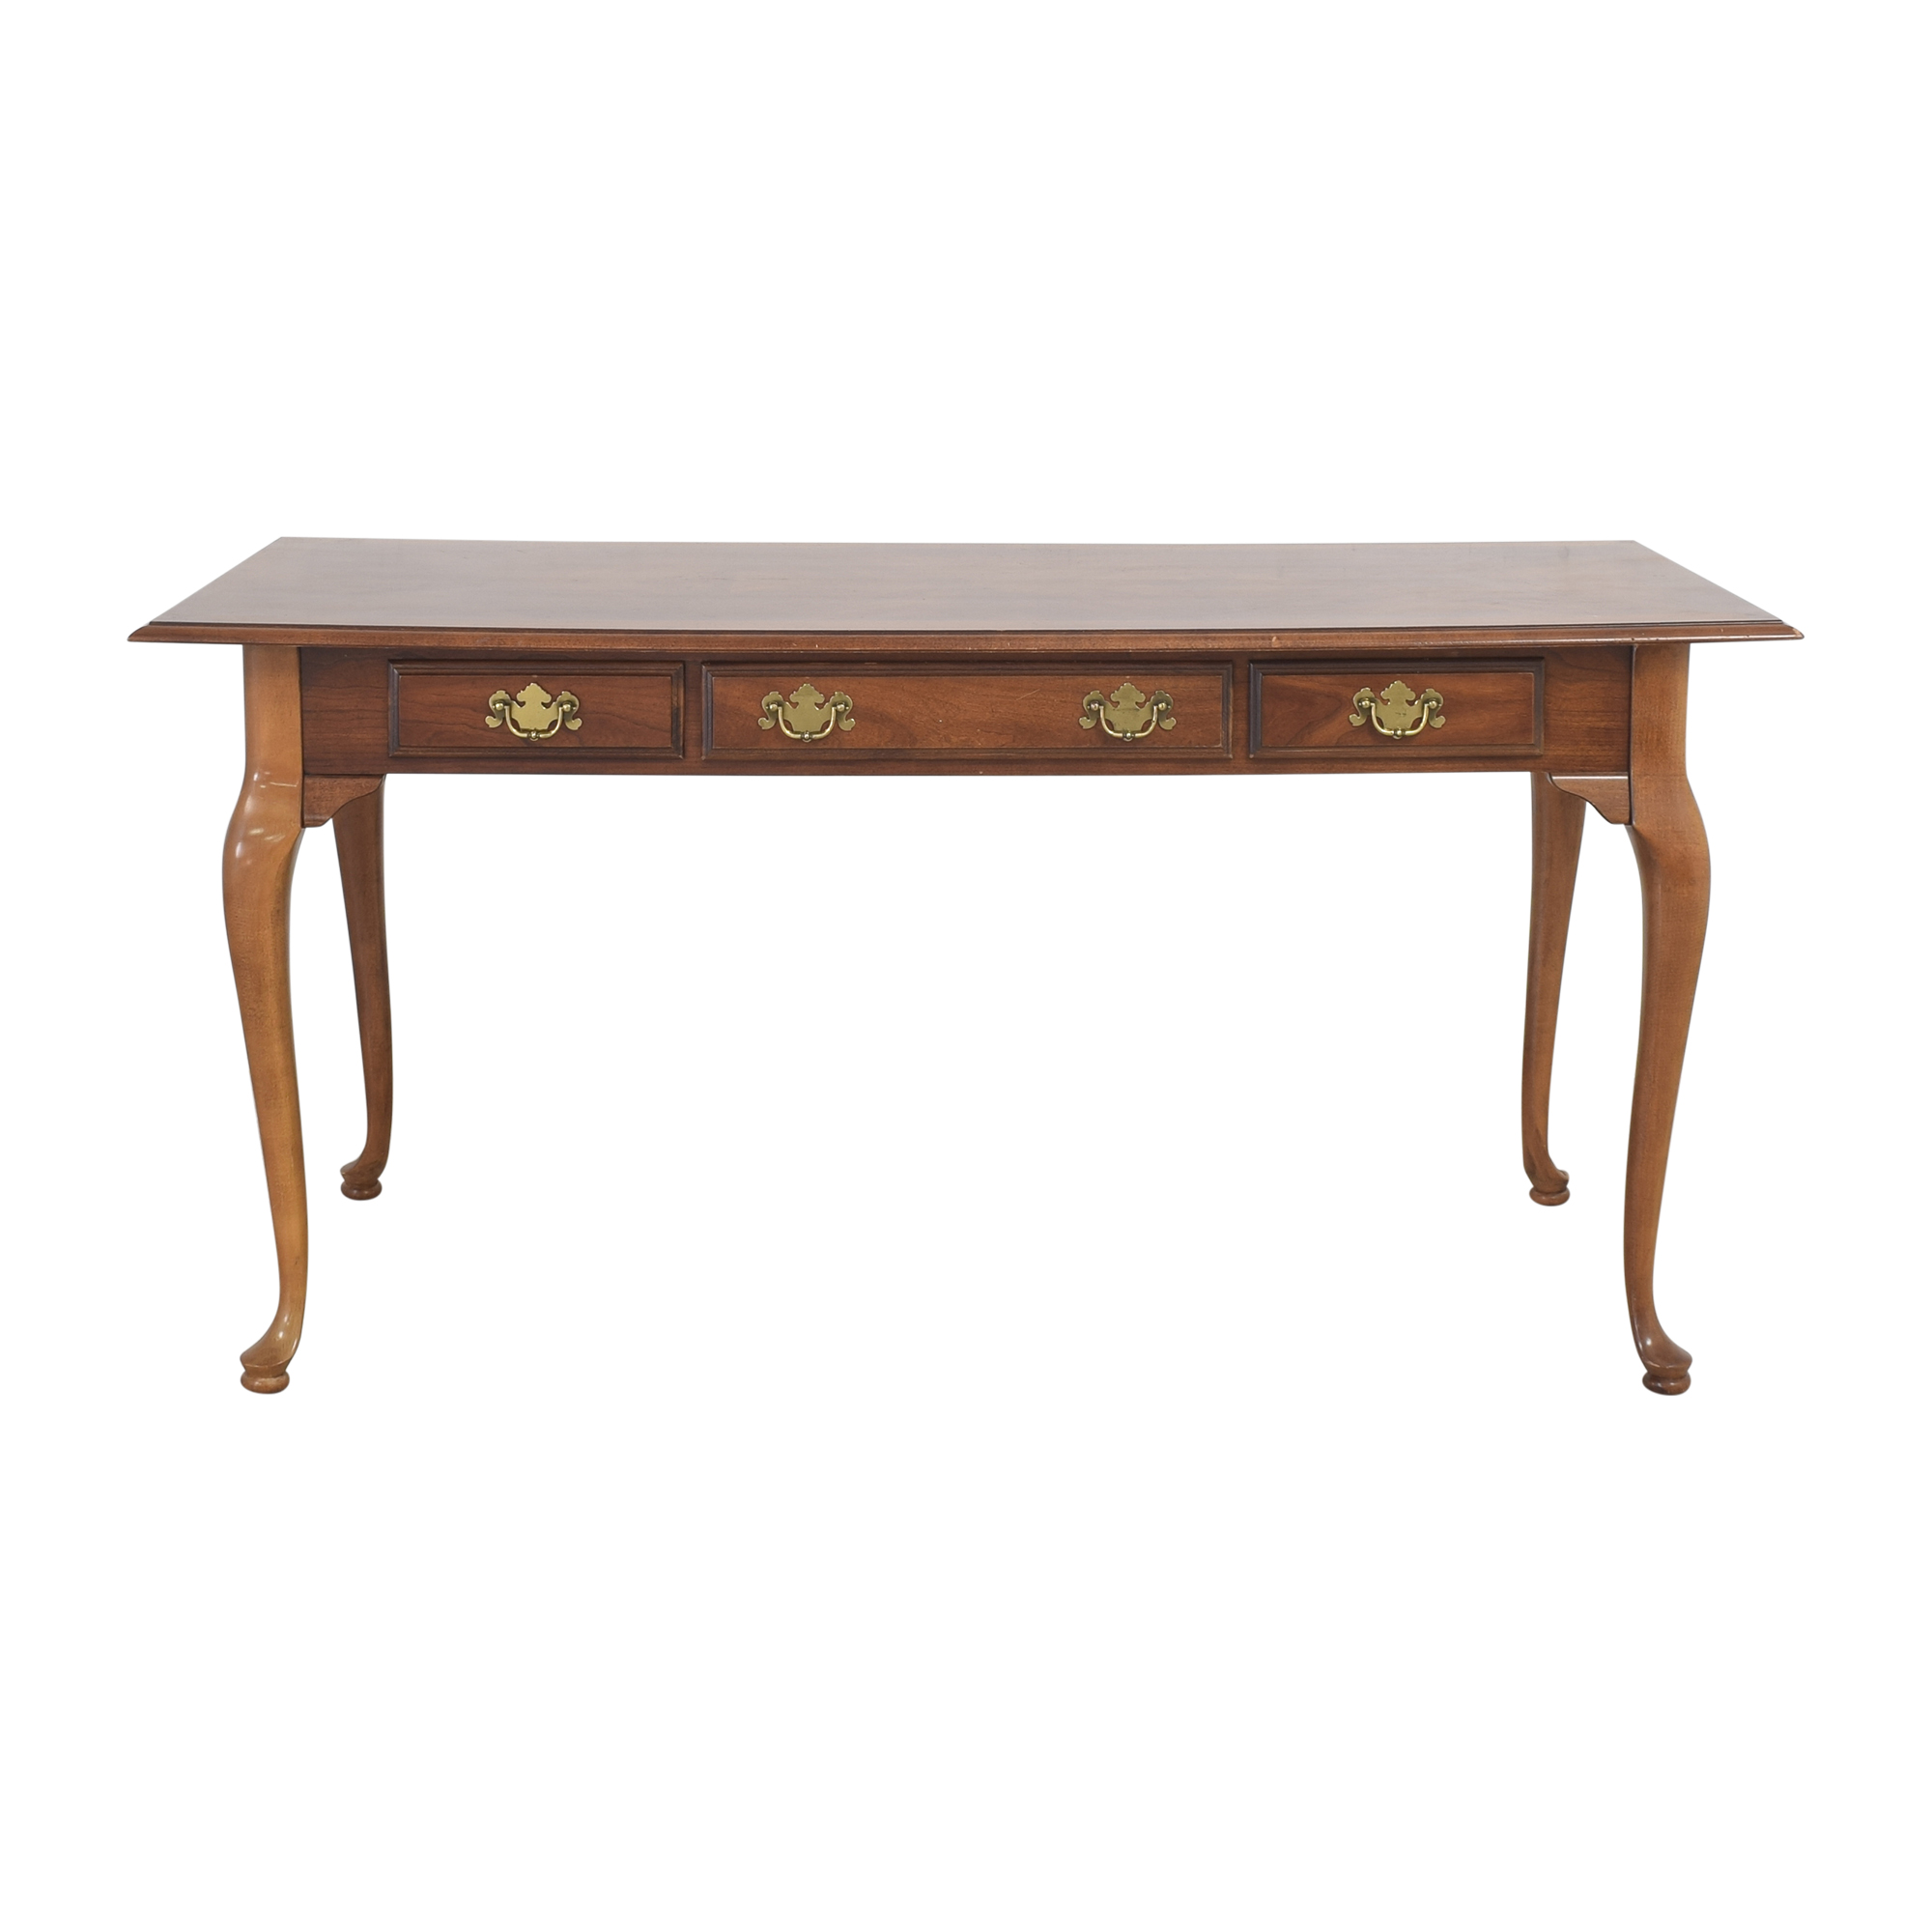 Mount Airy Queen Anne-Style Desk / Home Office Desks